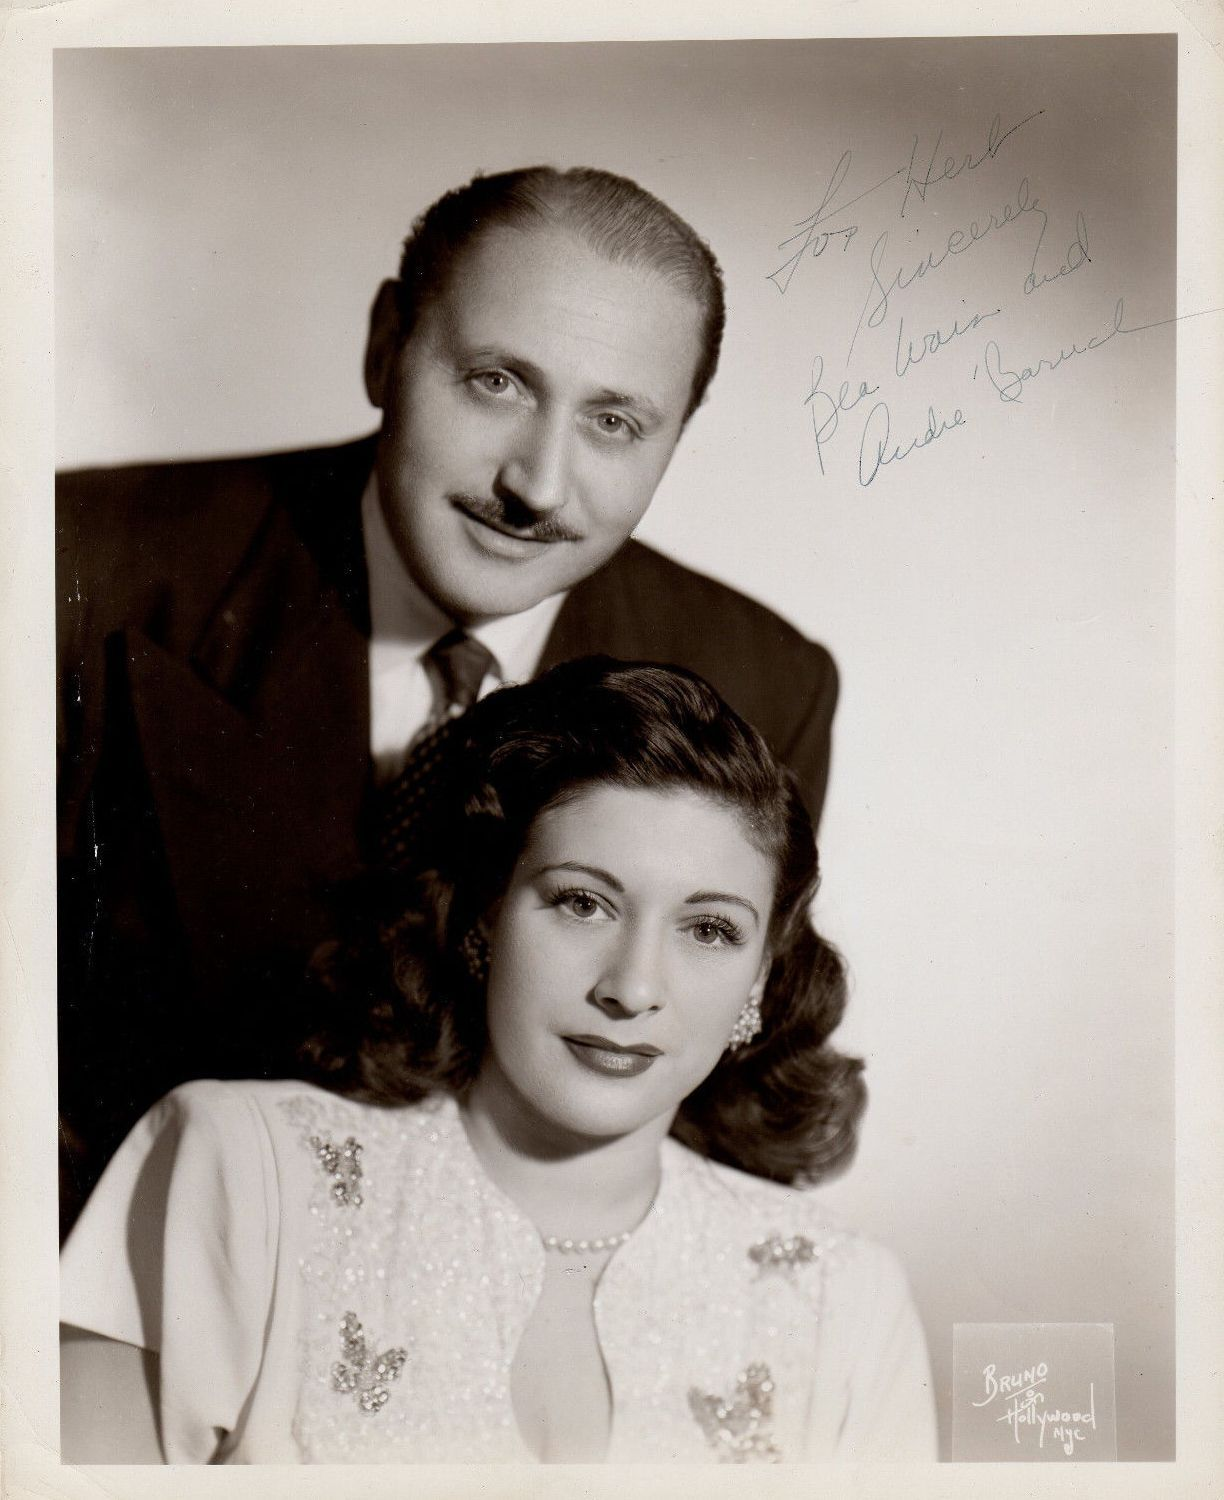 BEA WAIN and ANDRE BARUCH